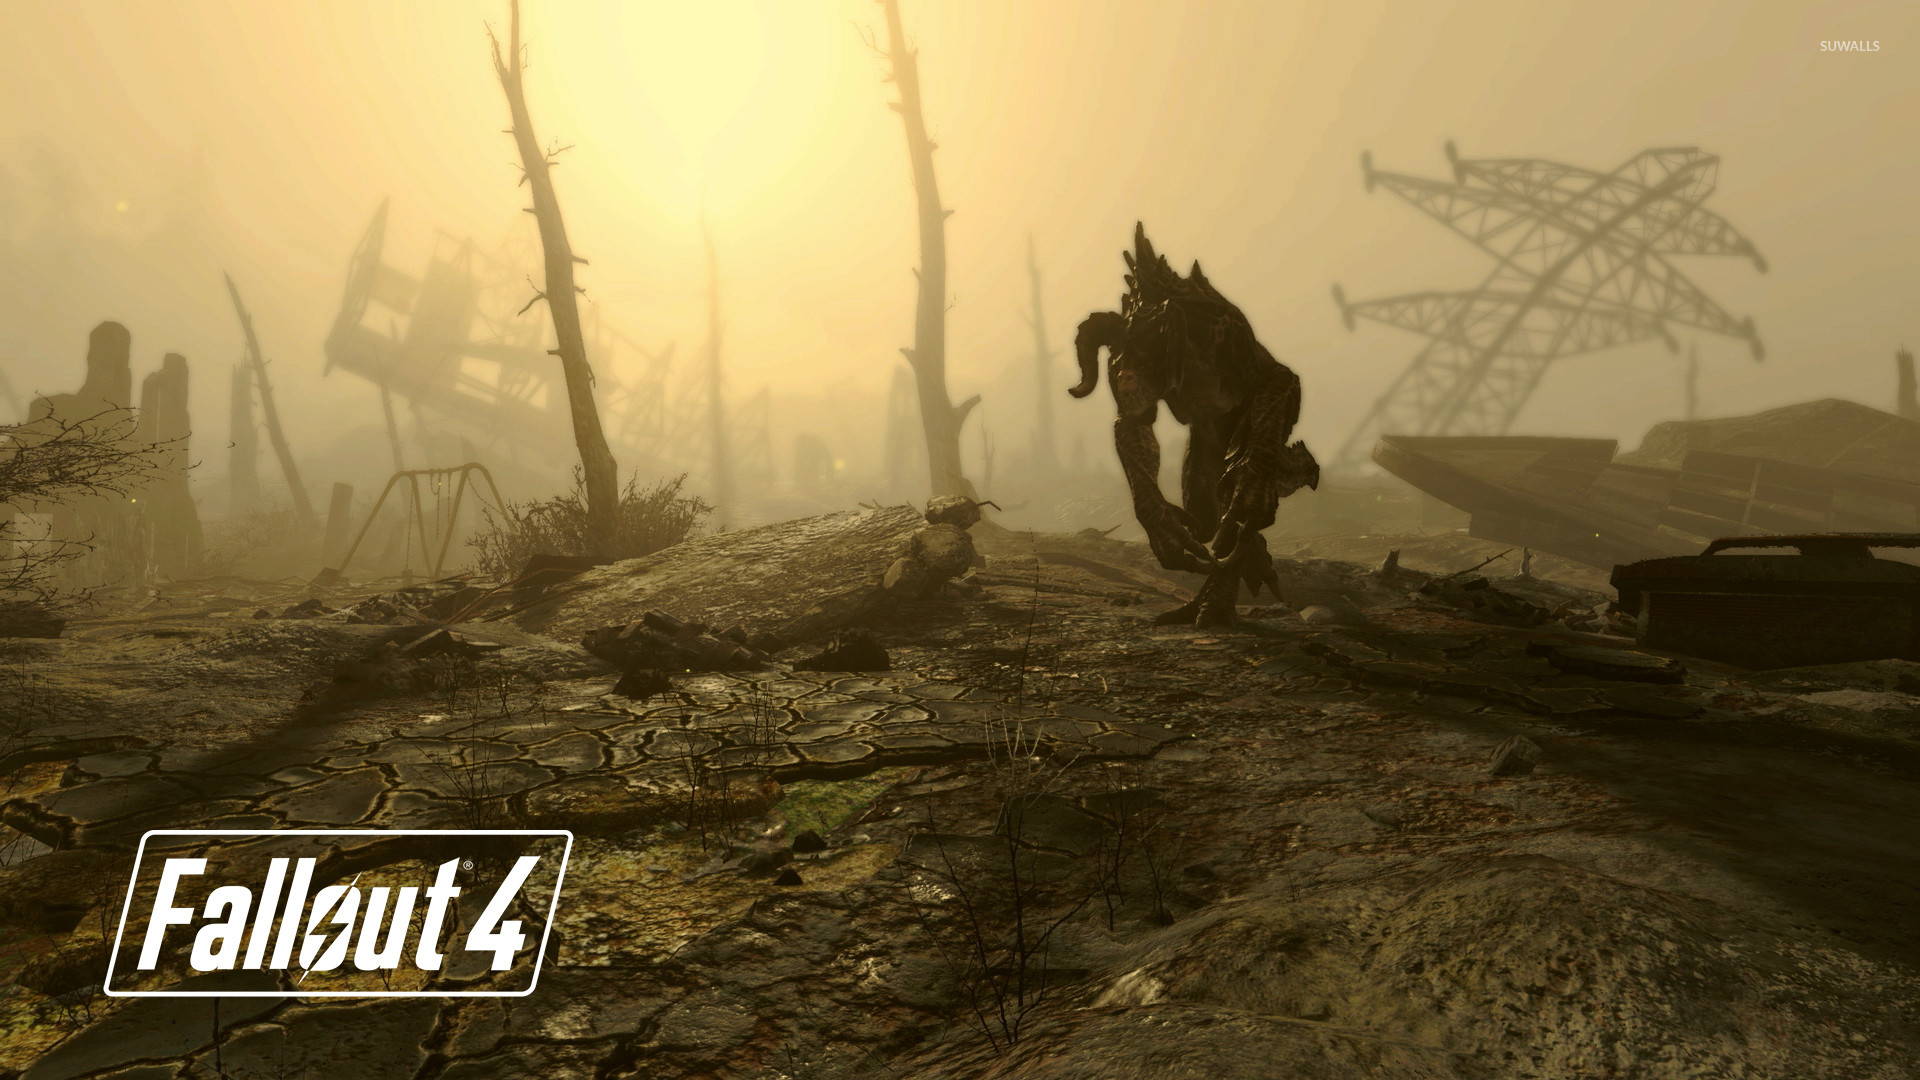 Deathclaw in Fallout 4 wallpaper jpg